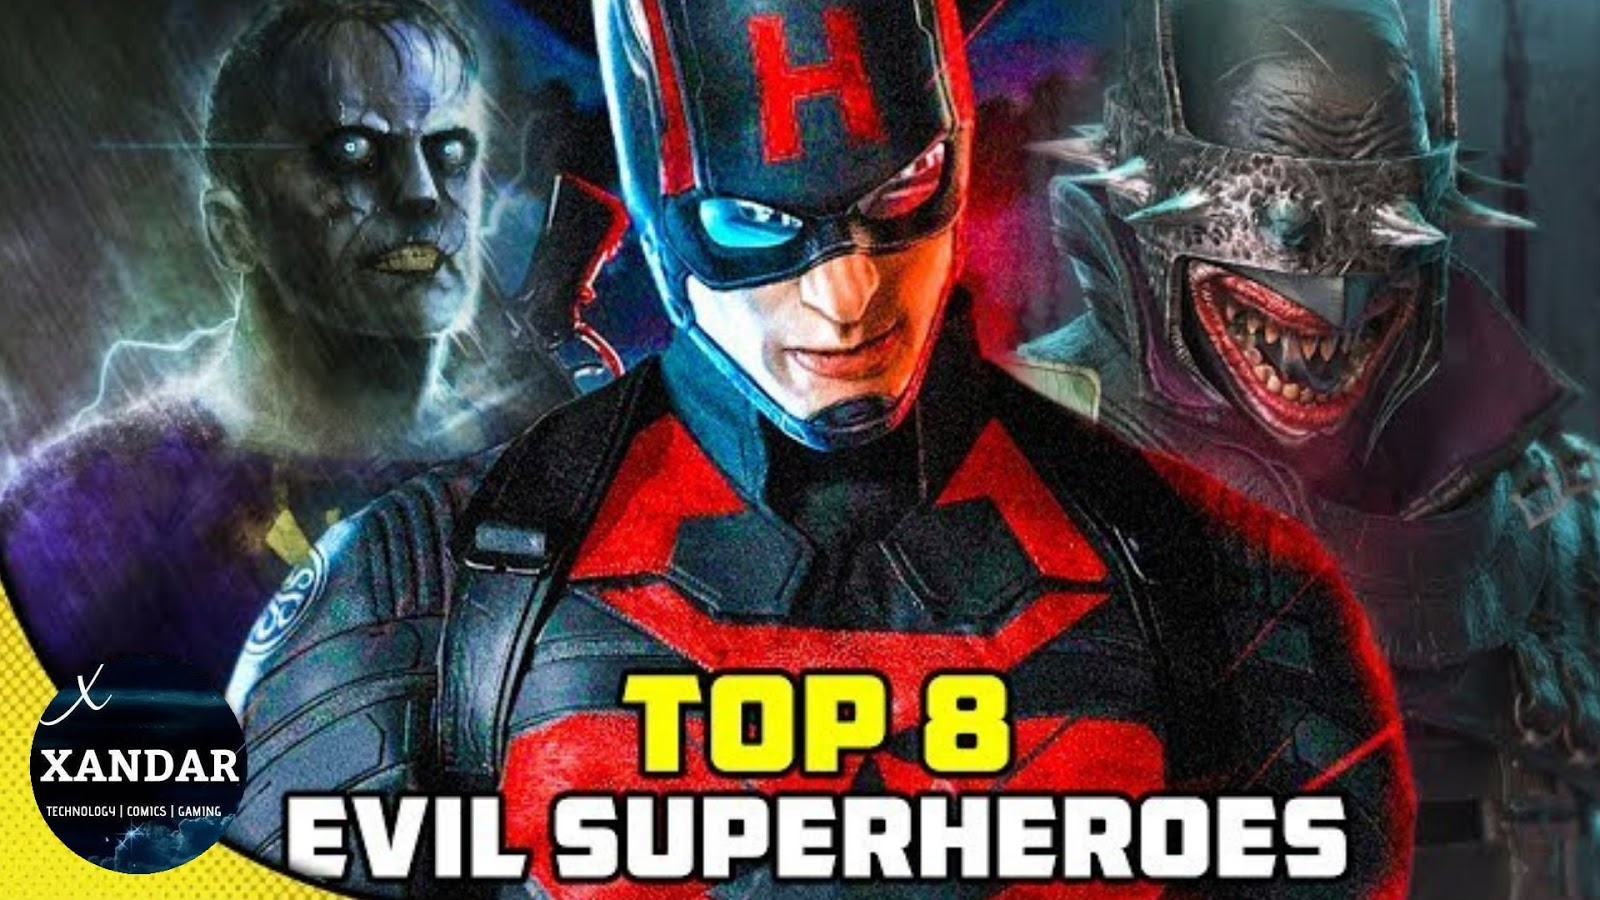 superheroes,evil version of superheroes,superhero,superheroes who turned evil,evil,evil version,dc superheroes,marvel & dc superheroes,funny superhero comics,dc superheroes 2018,evil vertion of superheroes,8 evil version of superheroes,superheroes evil,top 8 evil version of superheroes,batman evil,superhero comics,superman evil version,superheroes who became evil,10 marvel superheroes who turned evil